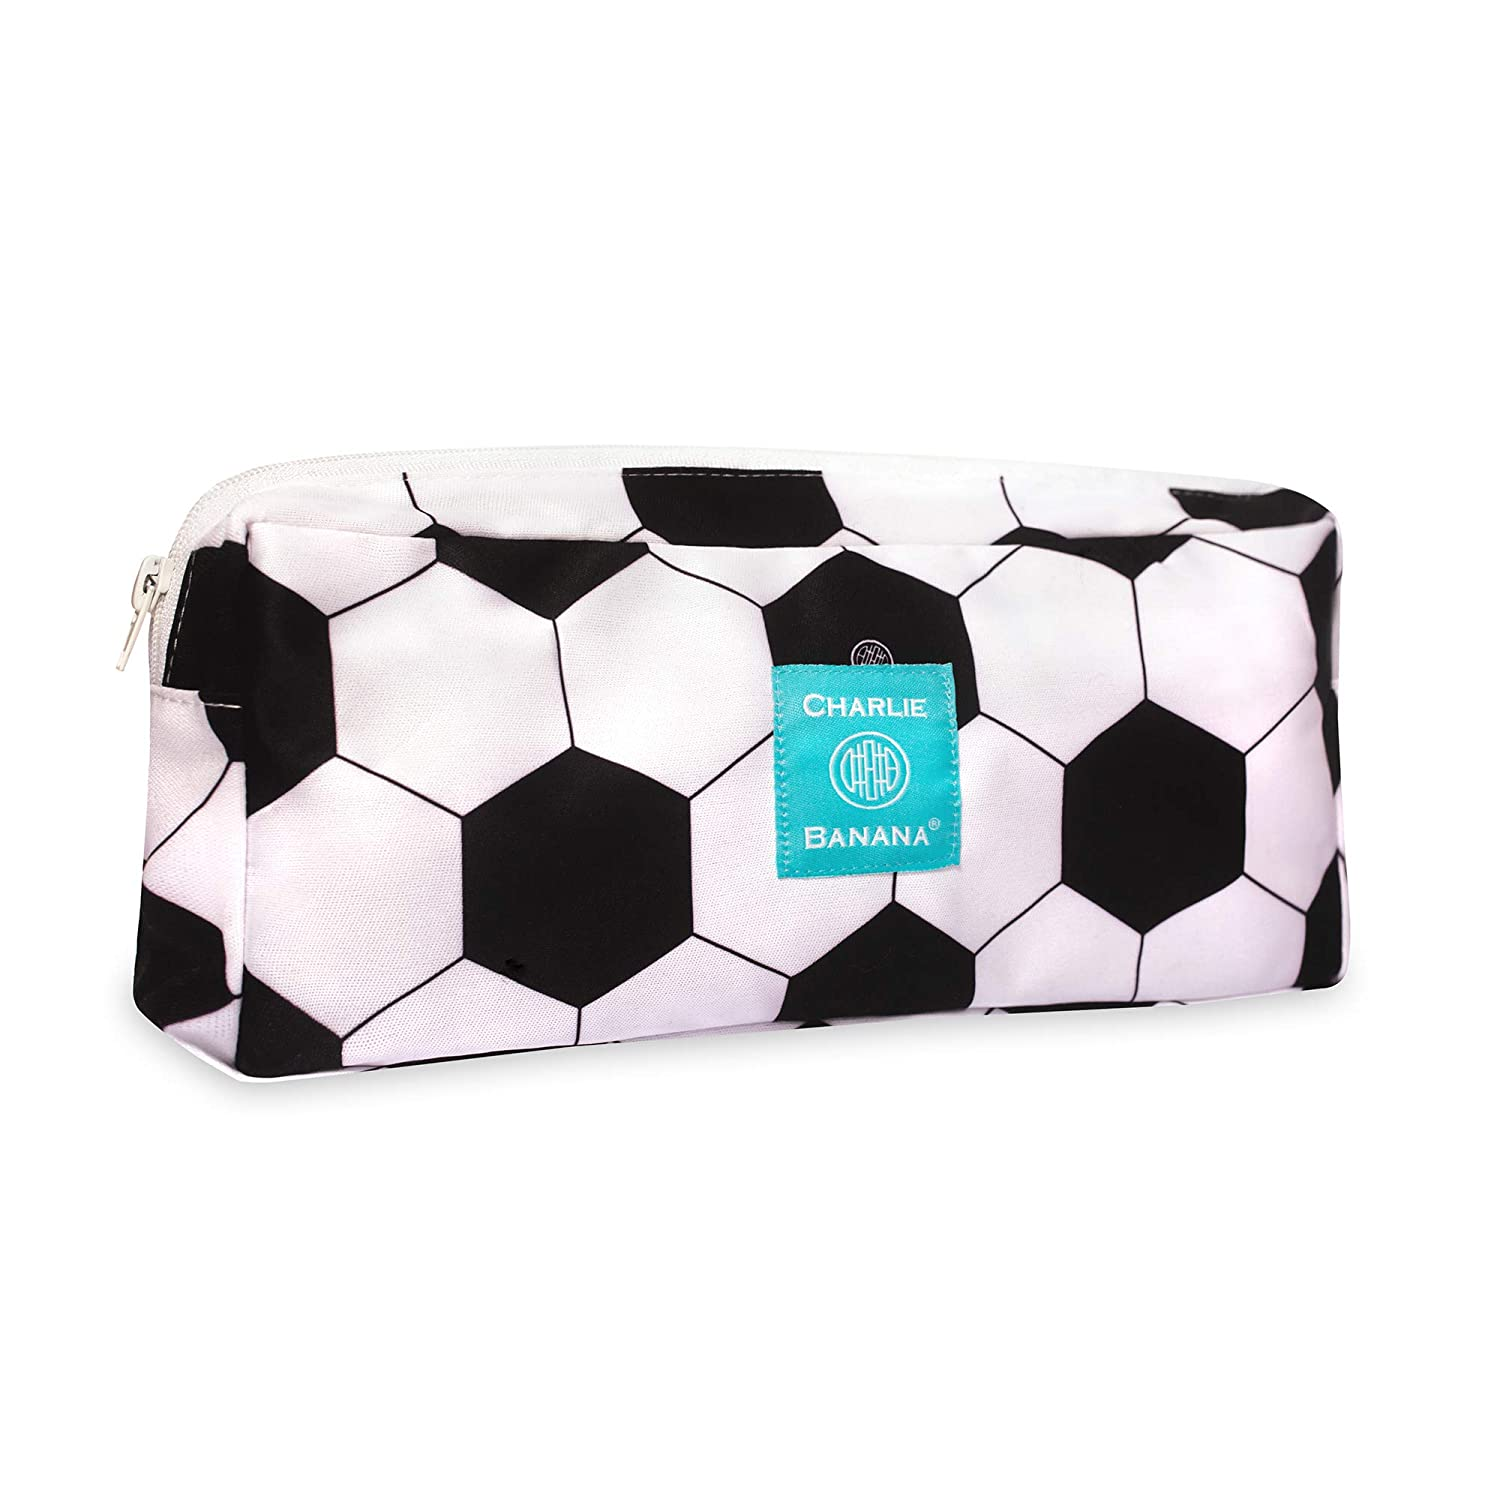 Charlie Banana Baby Multi-Purpose Waterproof Reusable and Washable Wet Pouch, Soccer